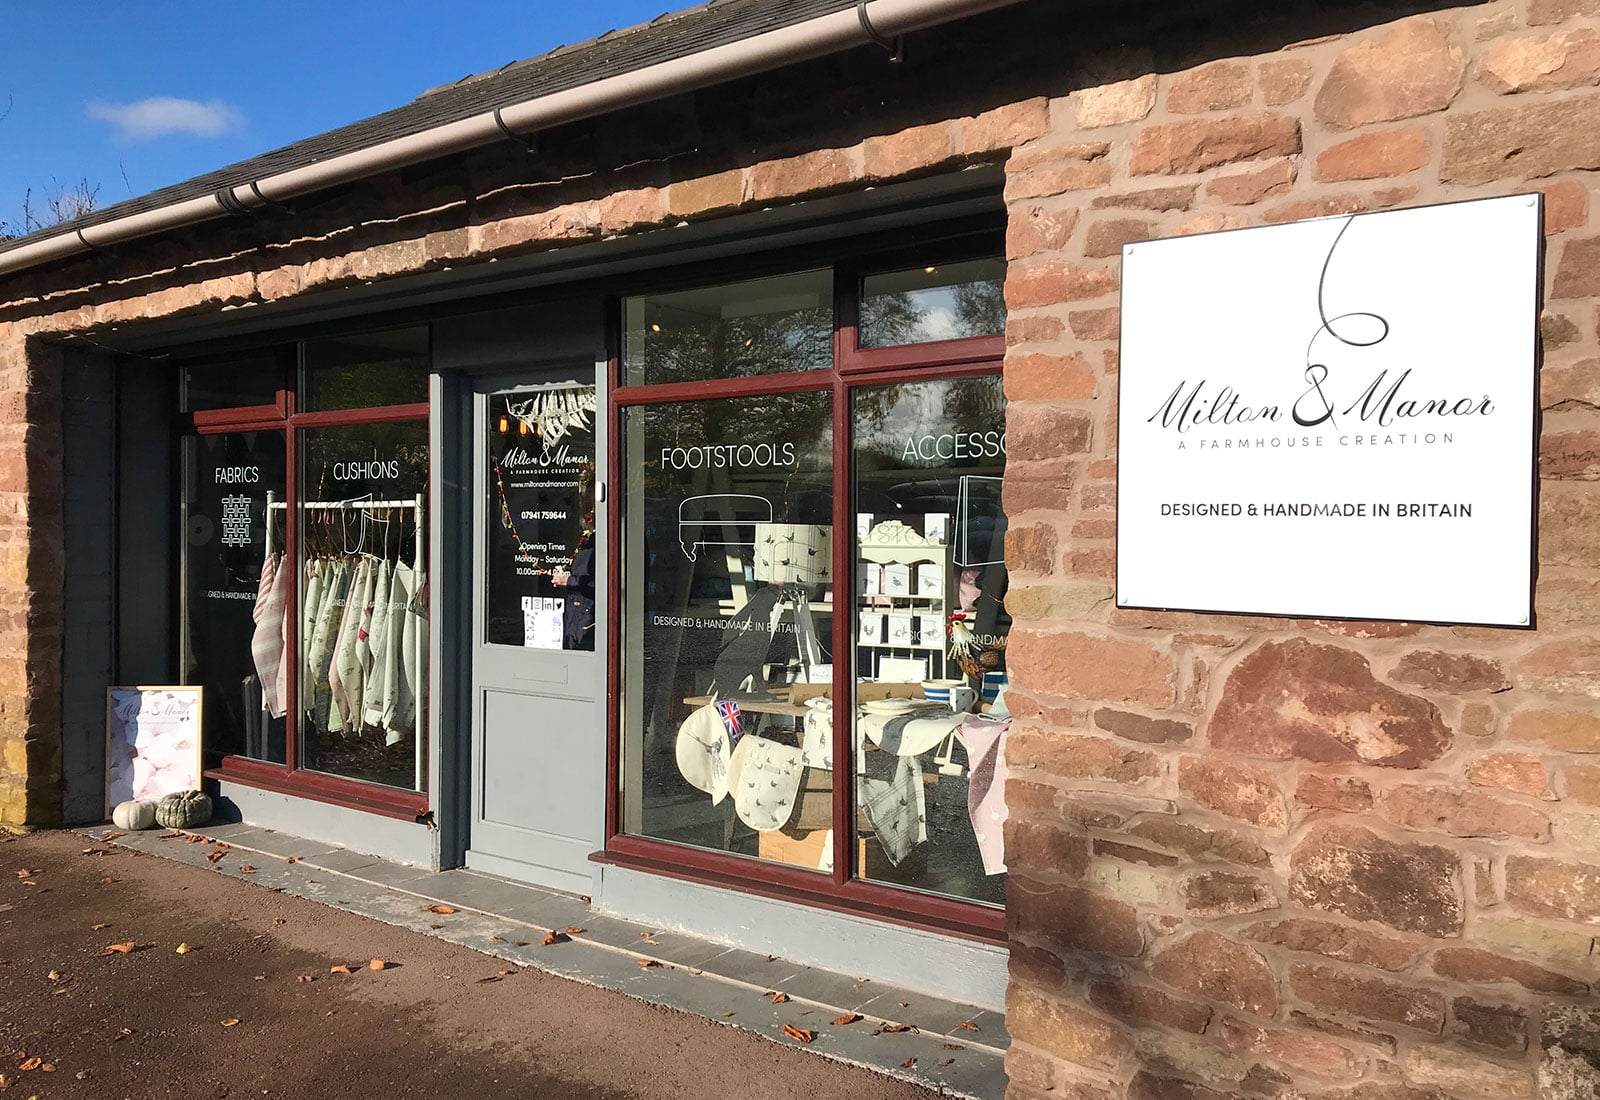 Milton and Manor shop